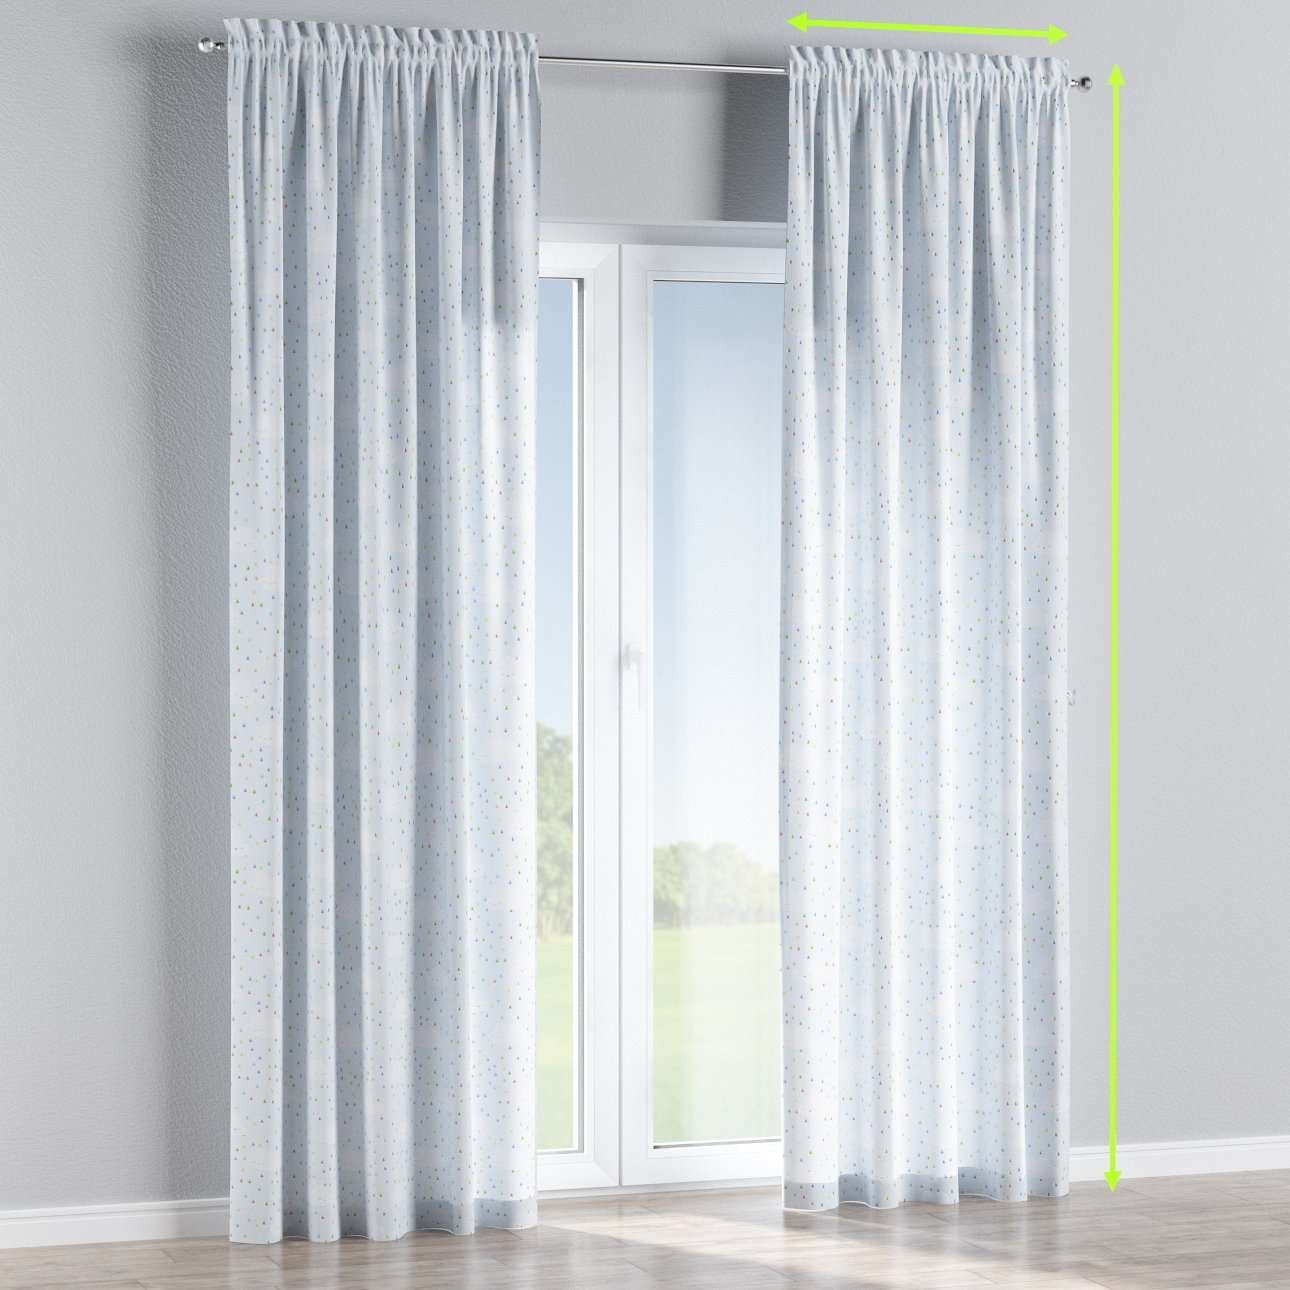 Slot and frill lined curtains in collection Apanona, fabric: 151-03